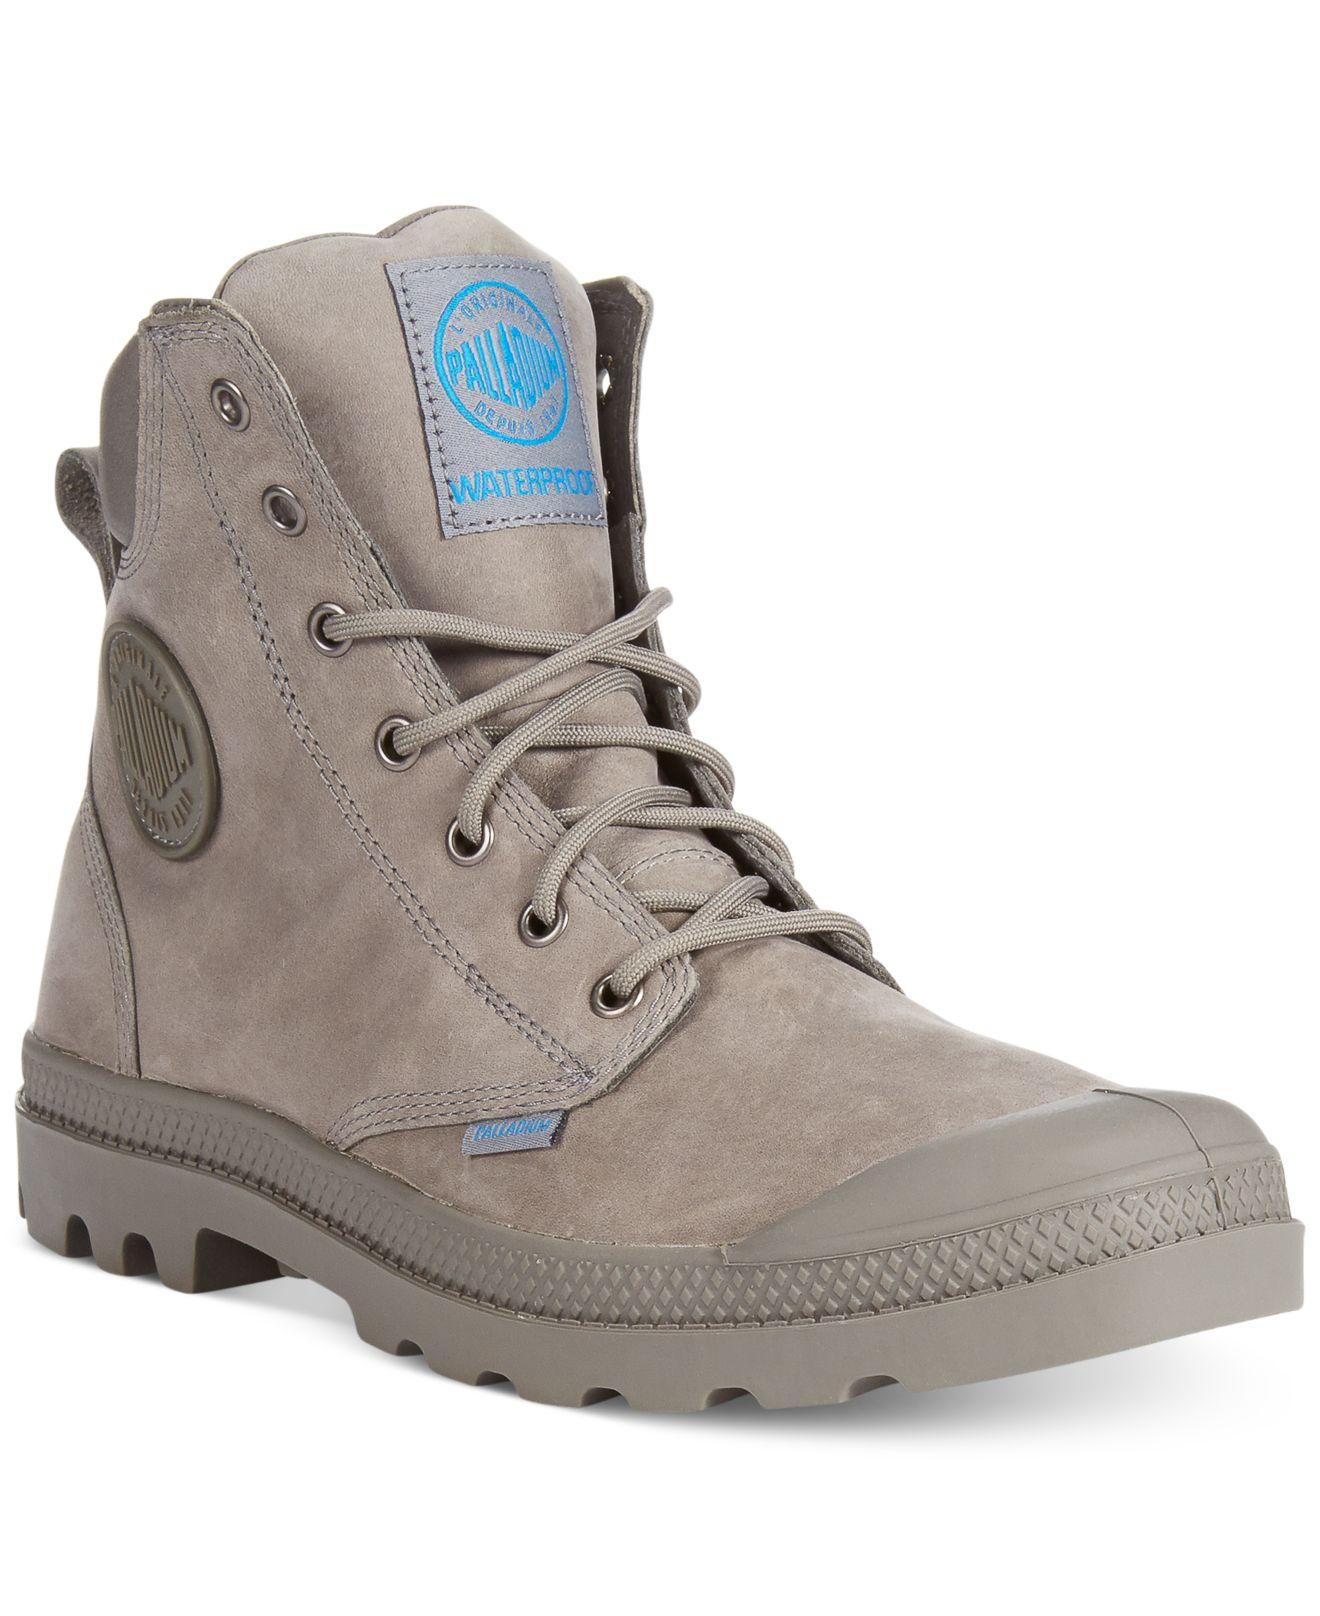 map projections with Green Palladium Boots on 337 5 as well 3968742084 additionally Size Of Africa moreover Green Palladium Boots additionally Victorian Landscape Architects Oppose Melbournes East West Link Proposal.